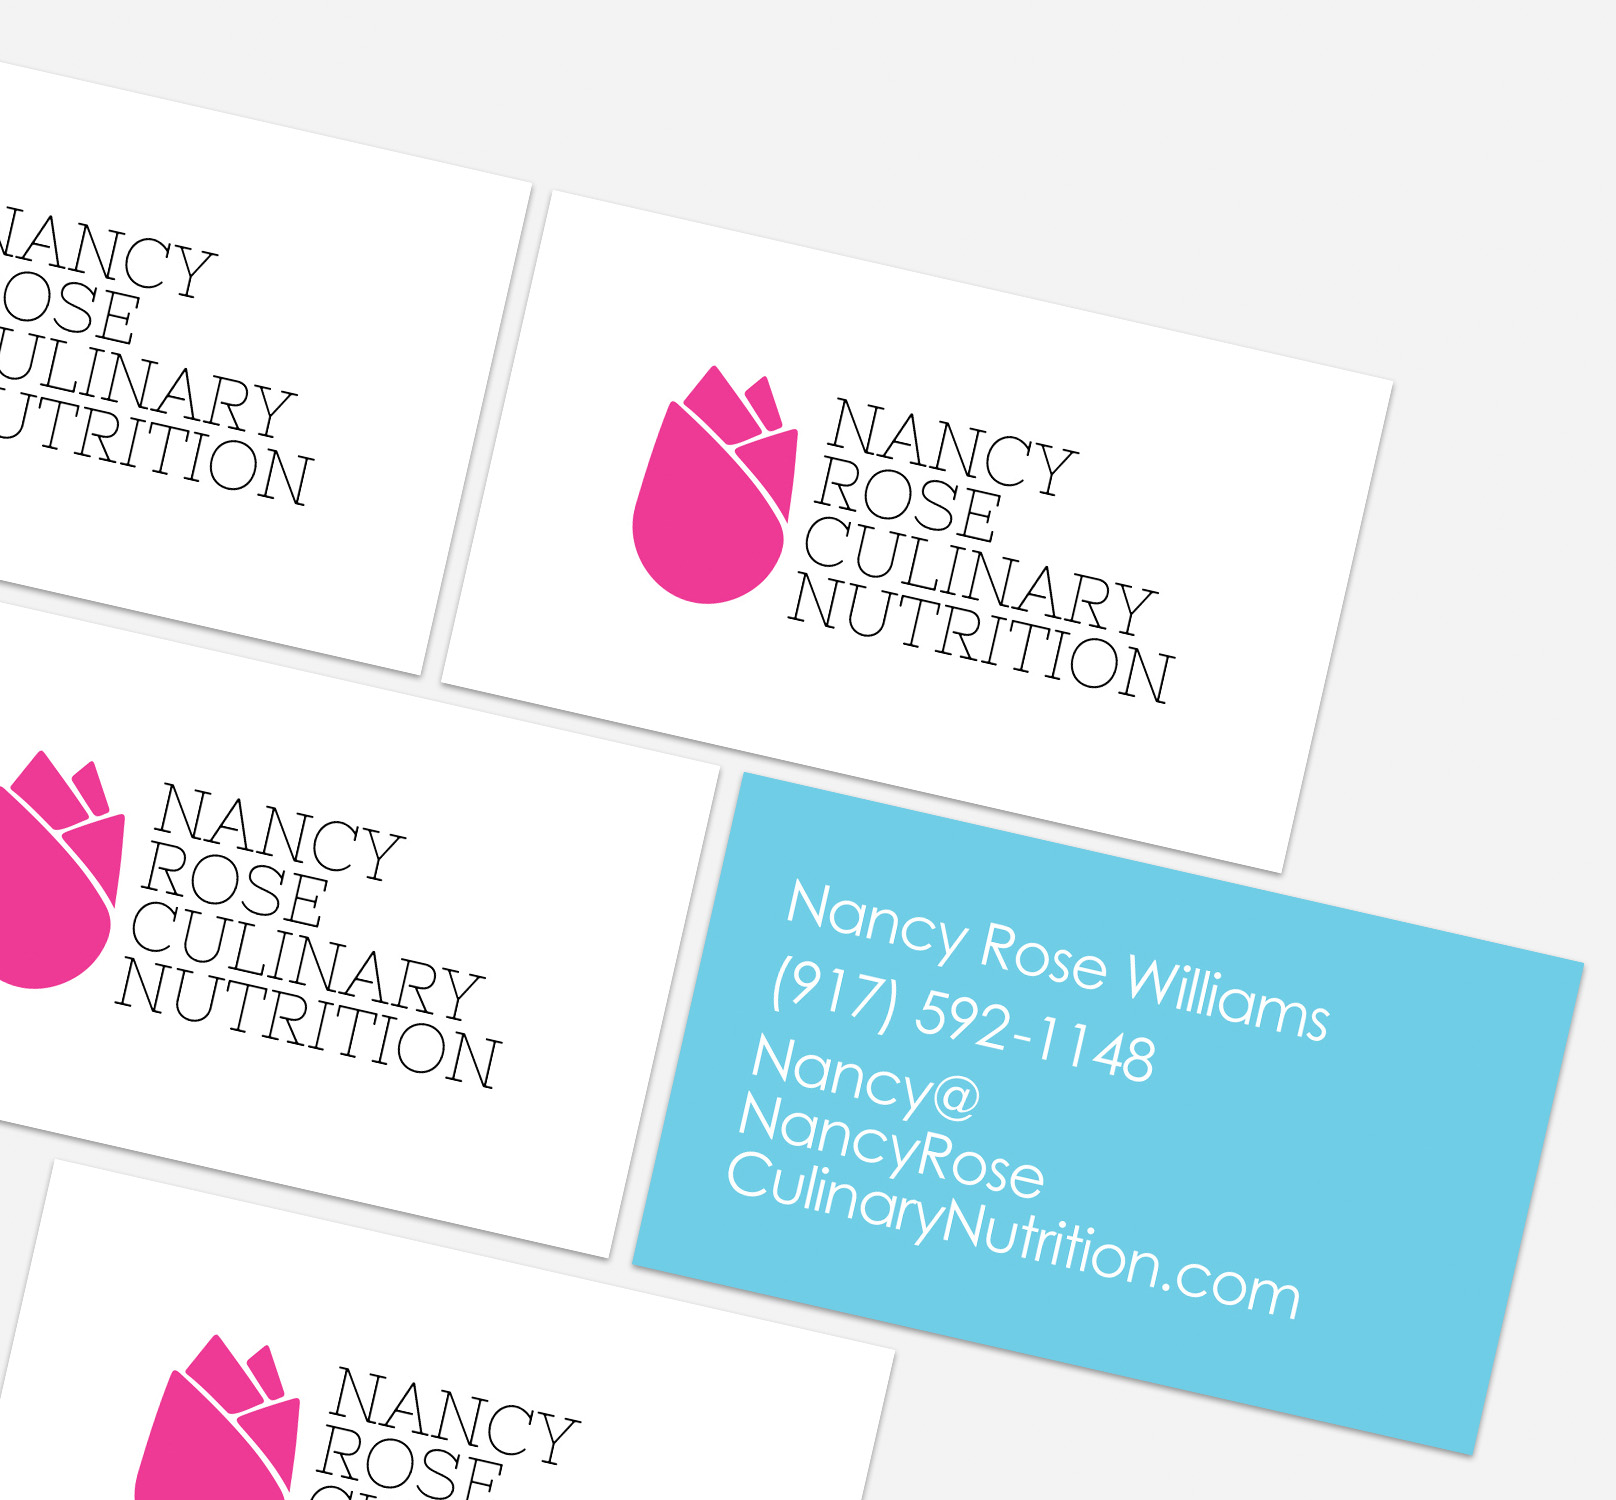 nancyrose-businesscard-sample